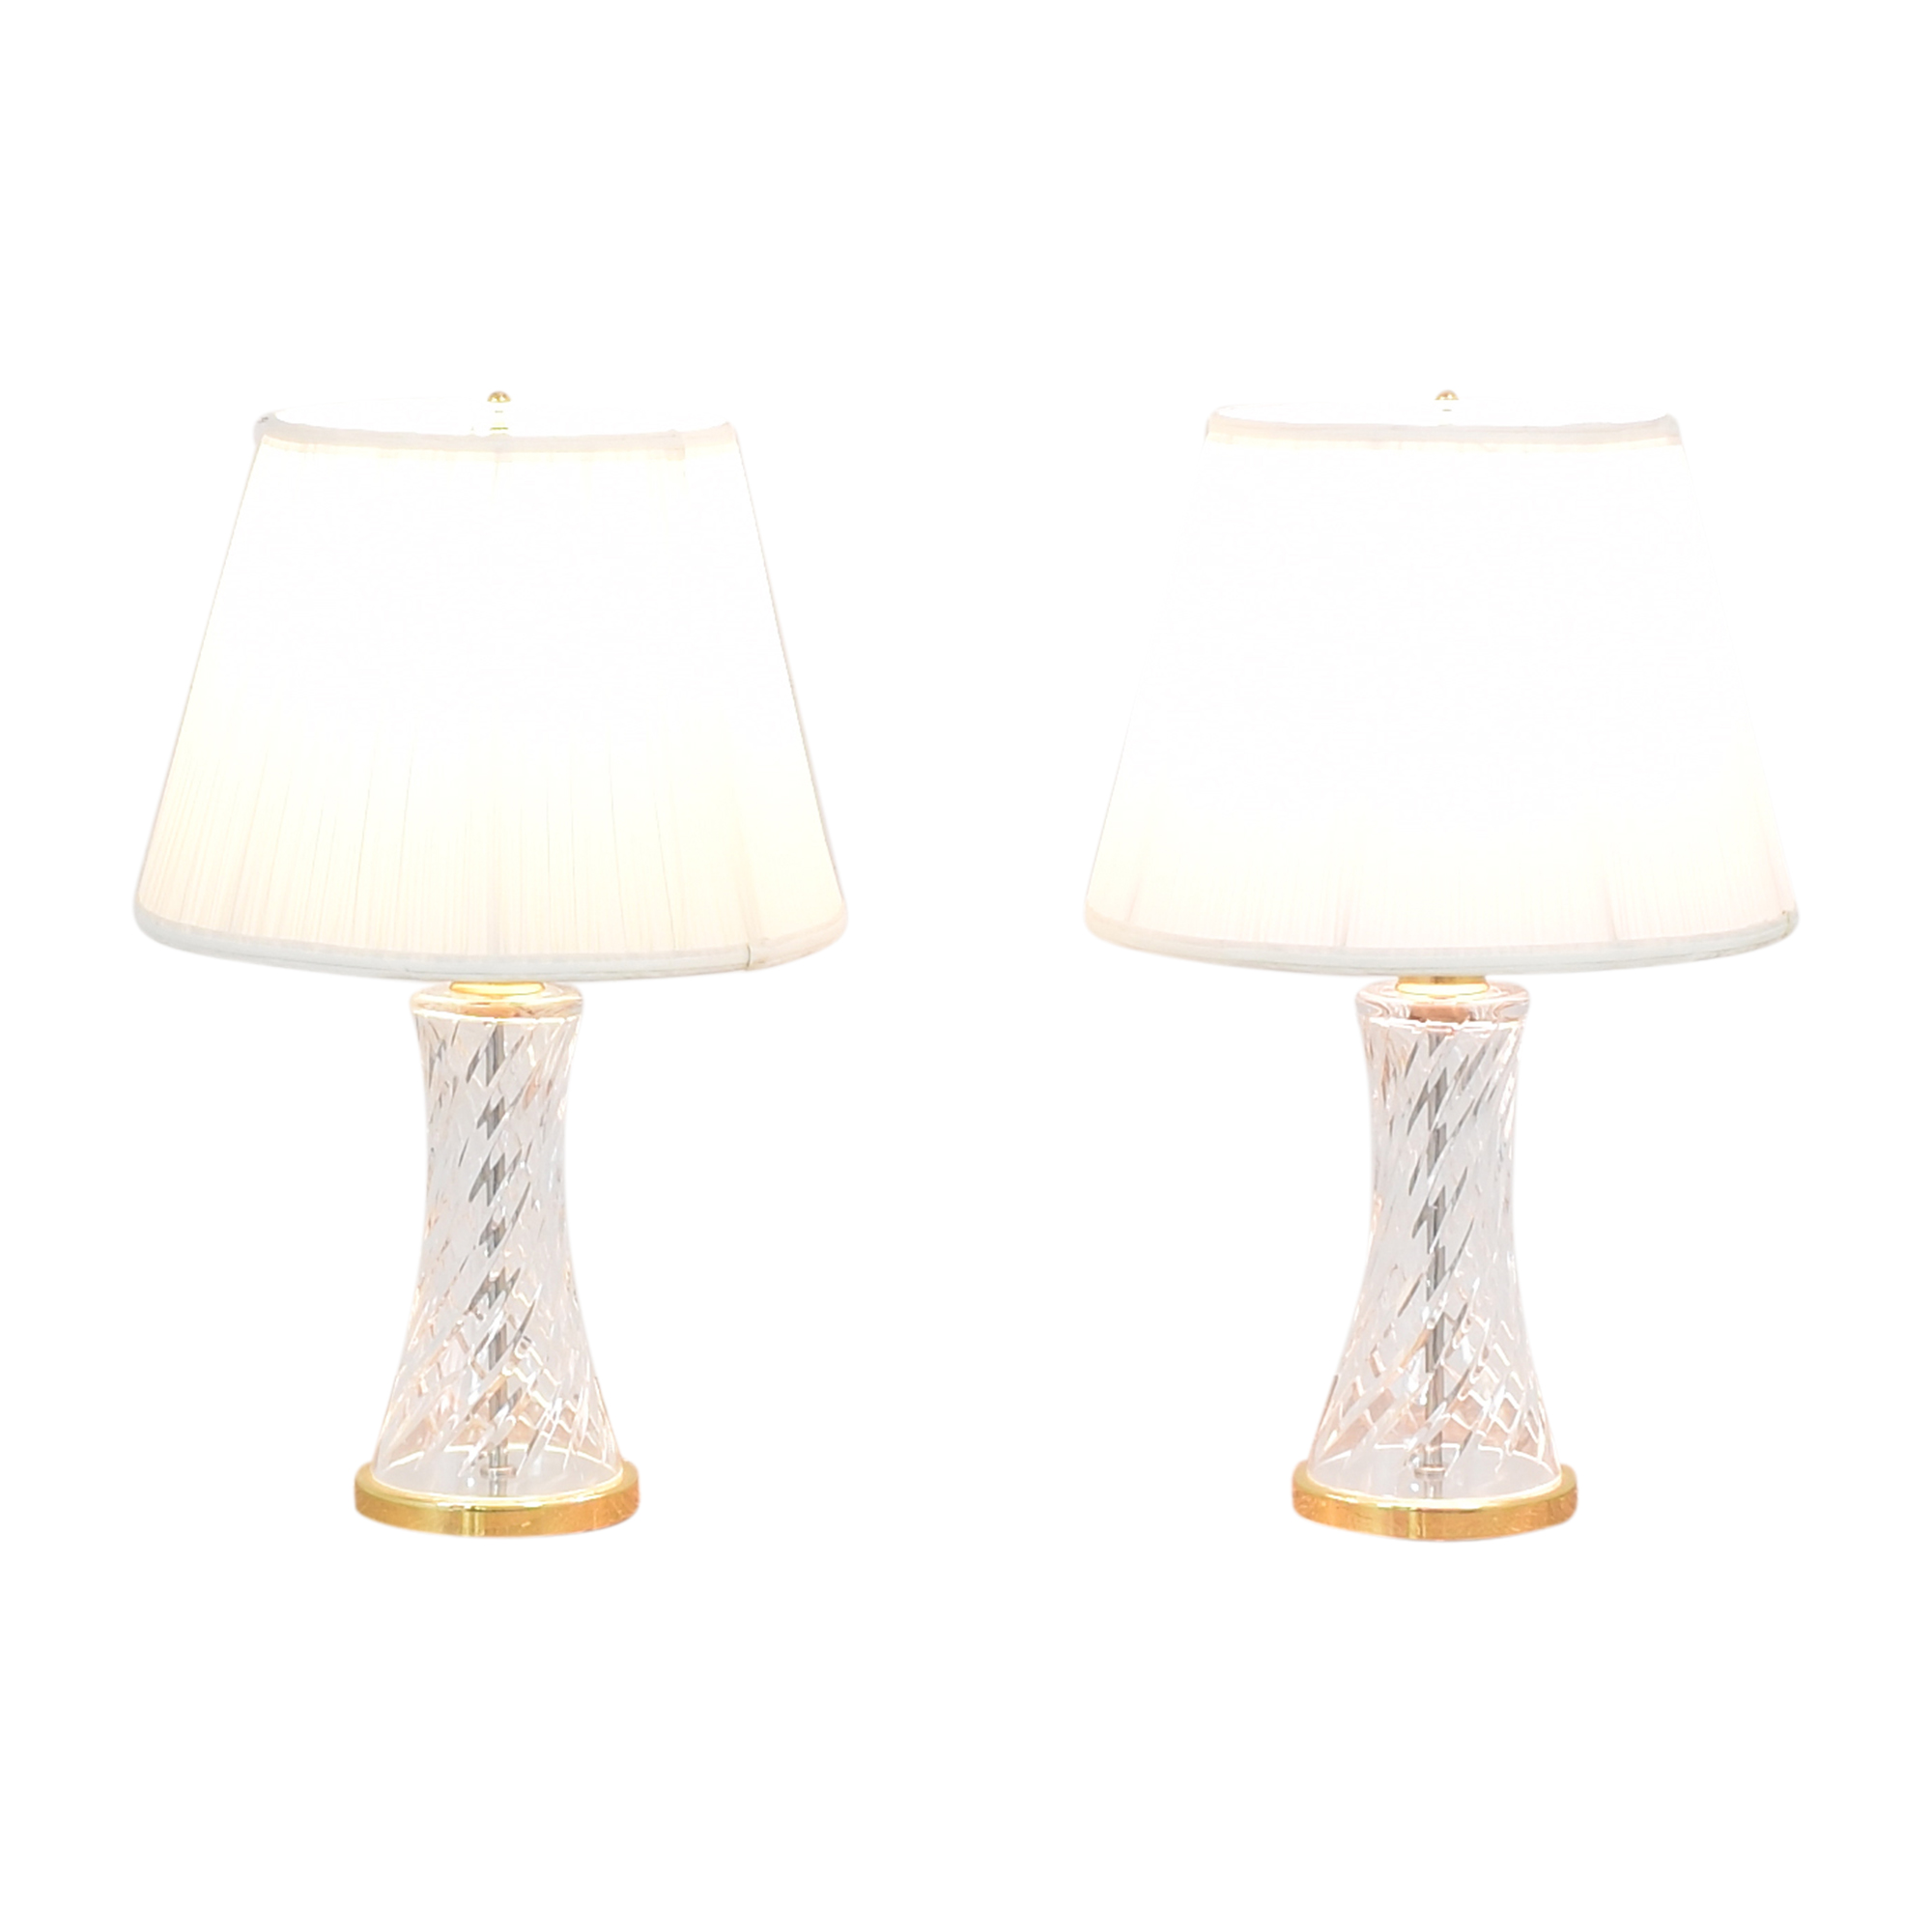 Waterford Waterford Table Lamps ct